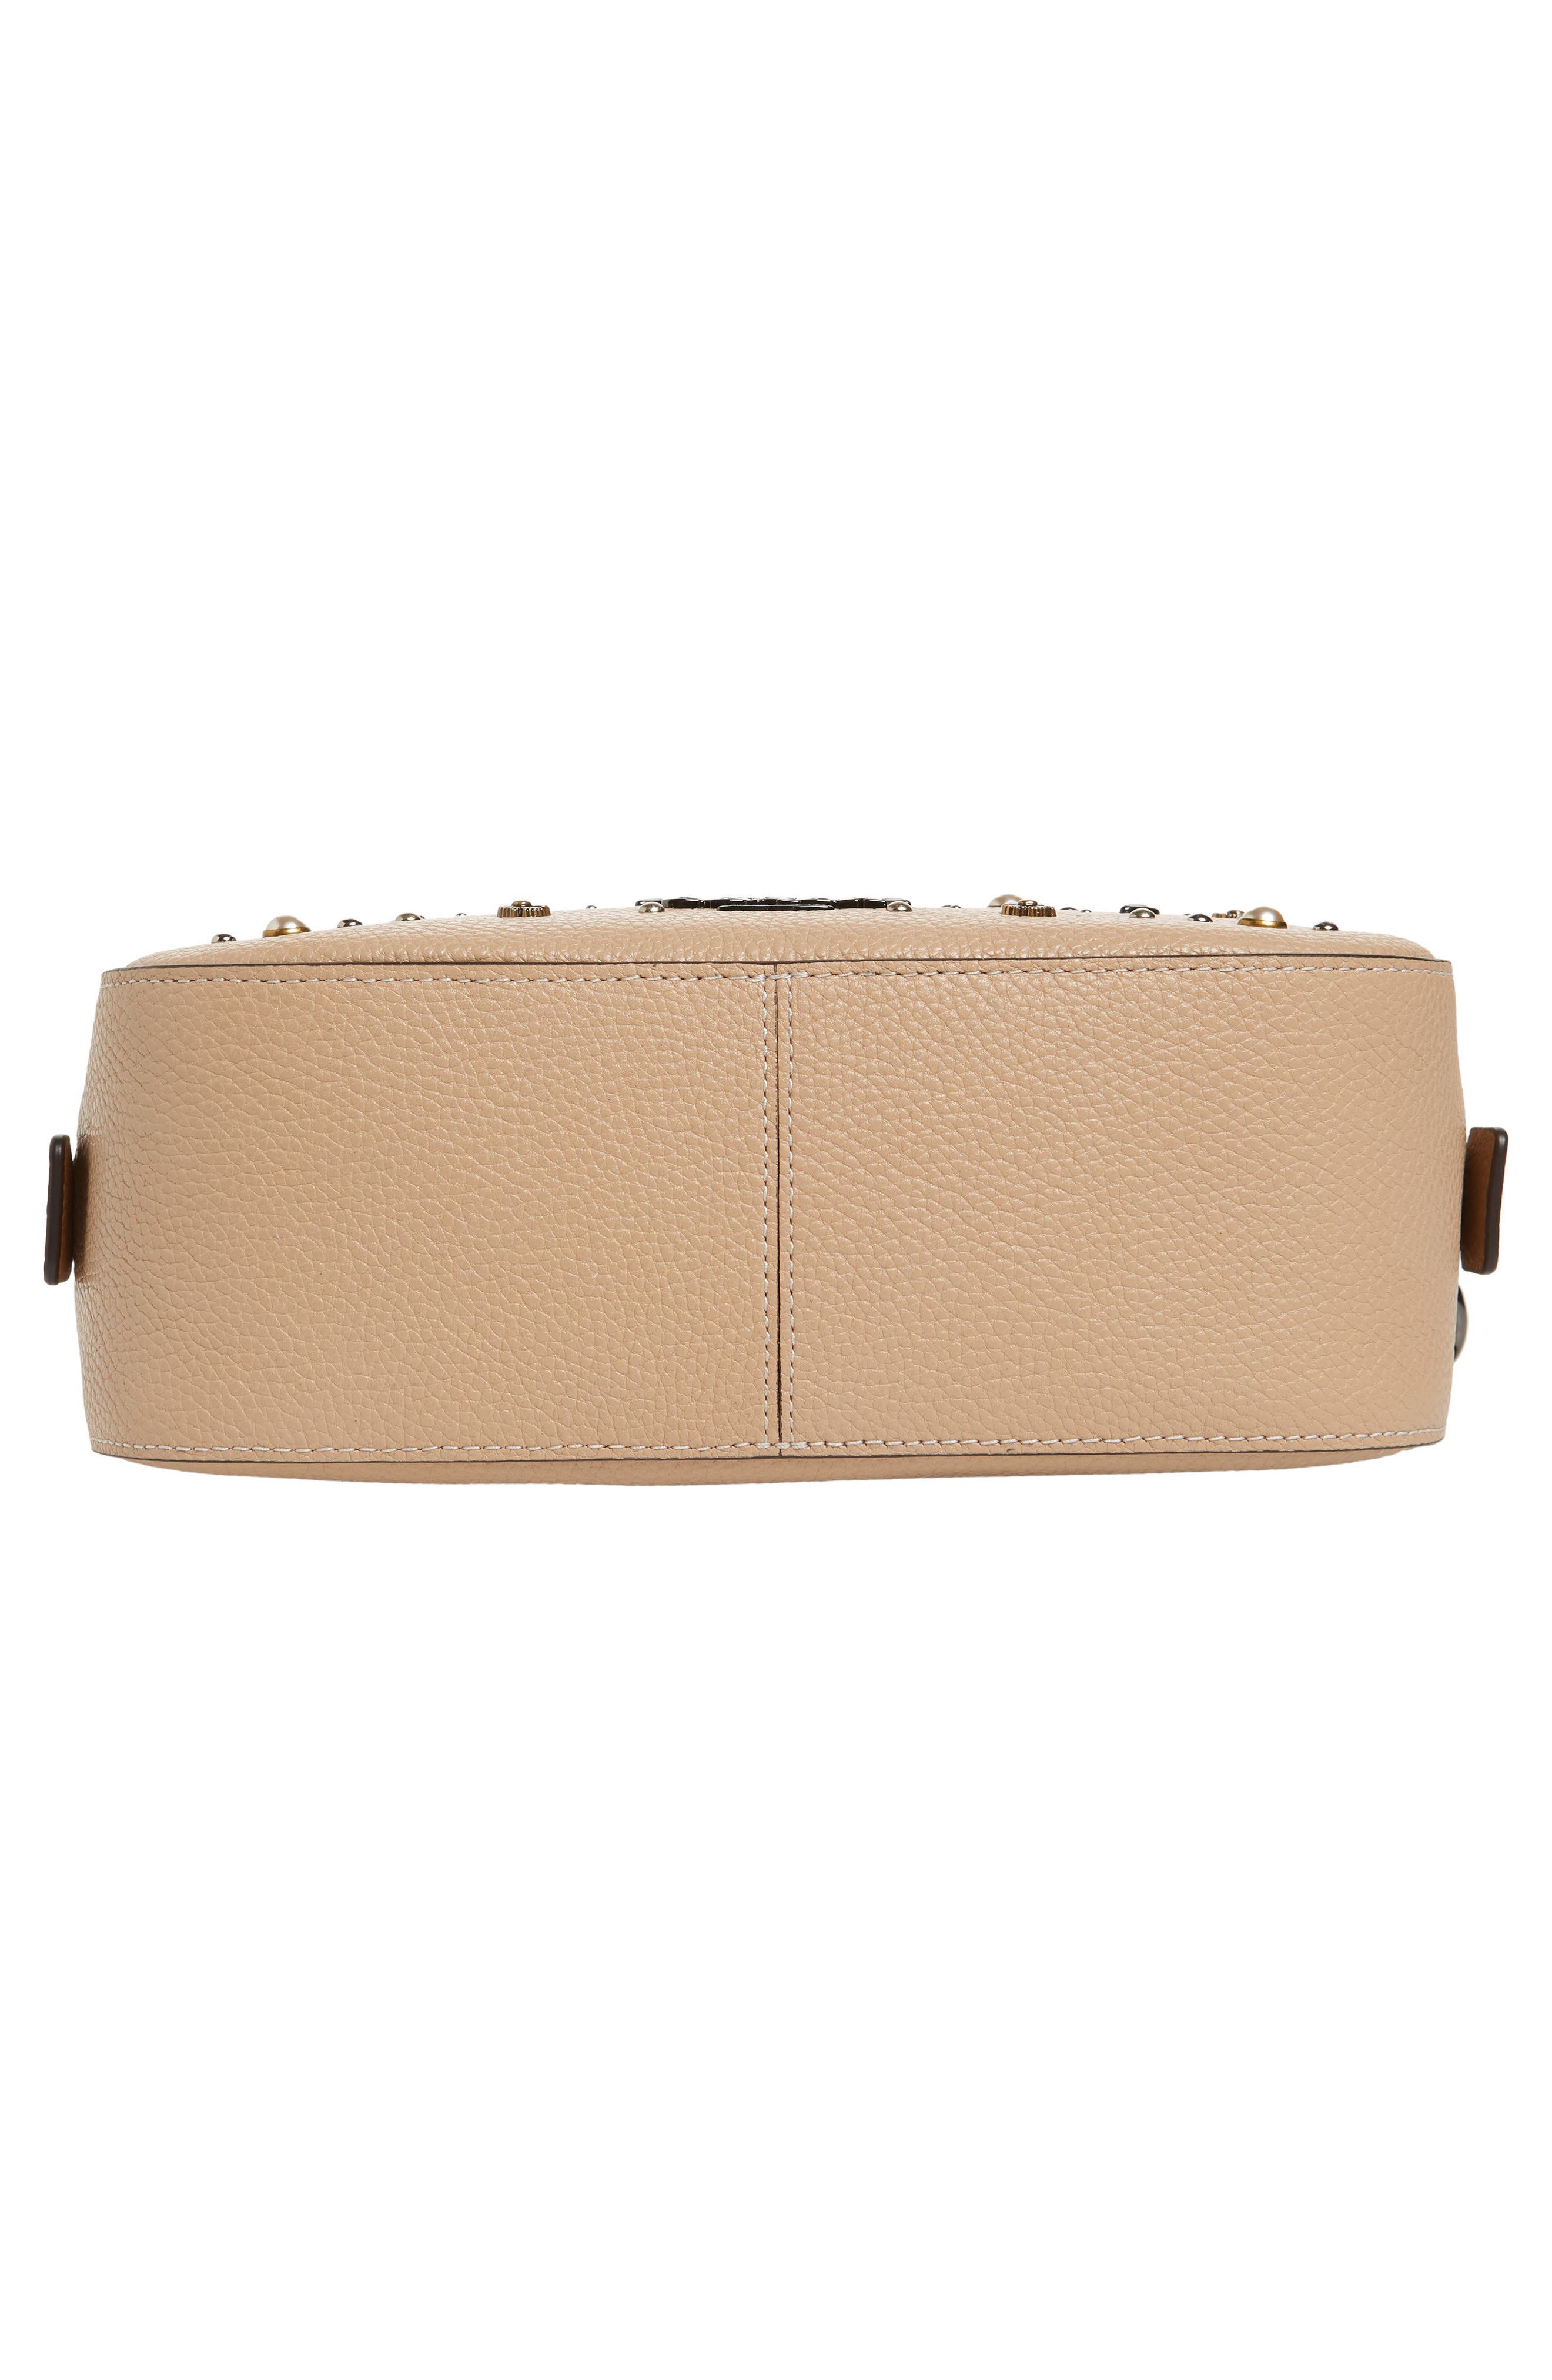 Studded Leather Camera Bag,                             Alternate thumbnail 6, color,                             Beechwood